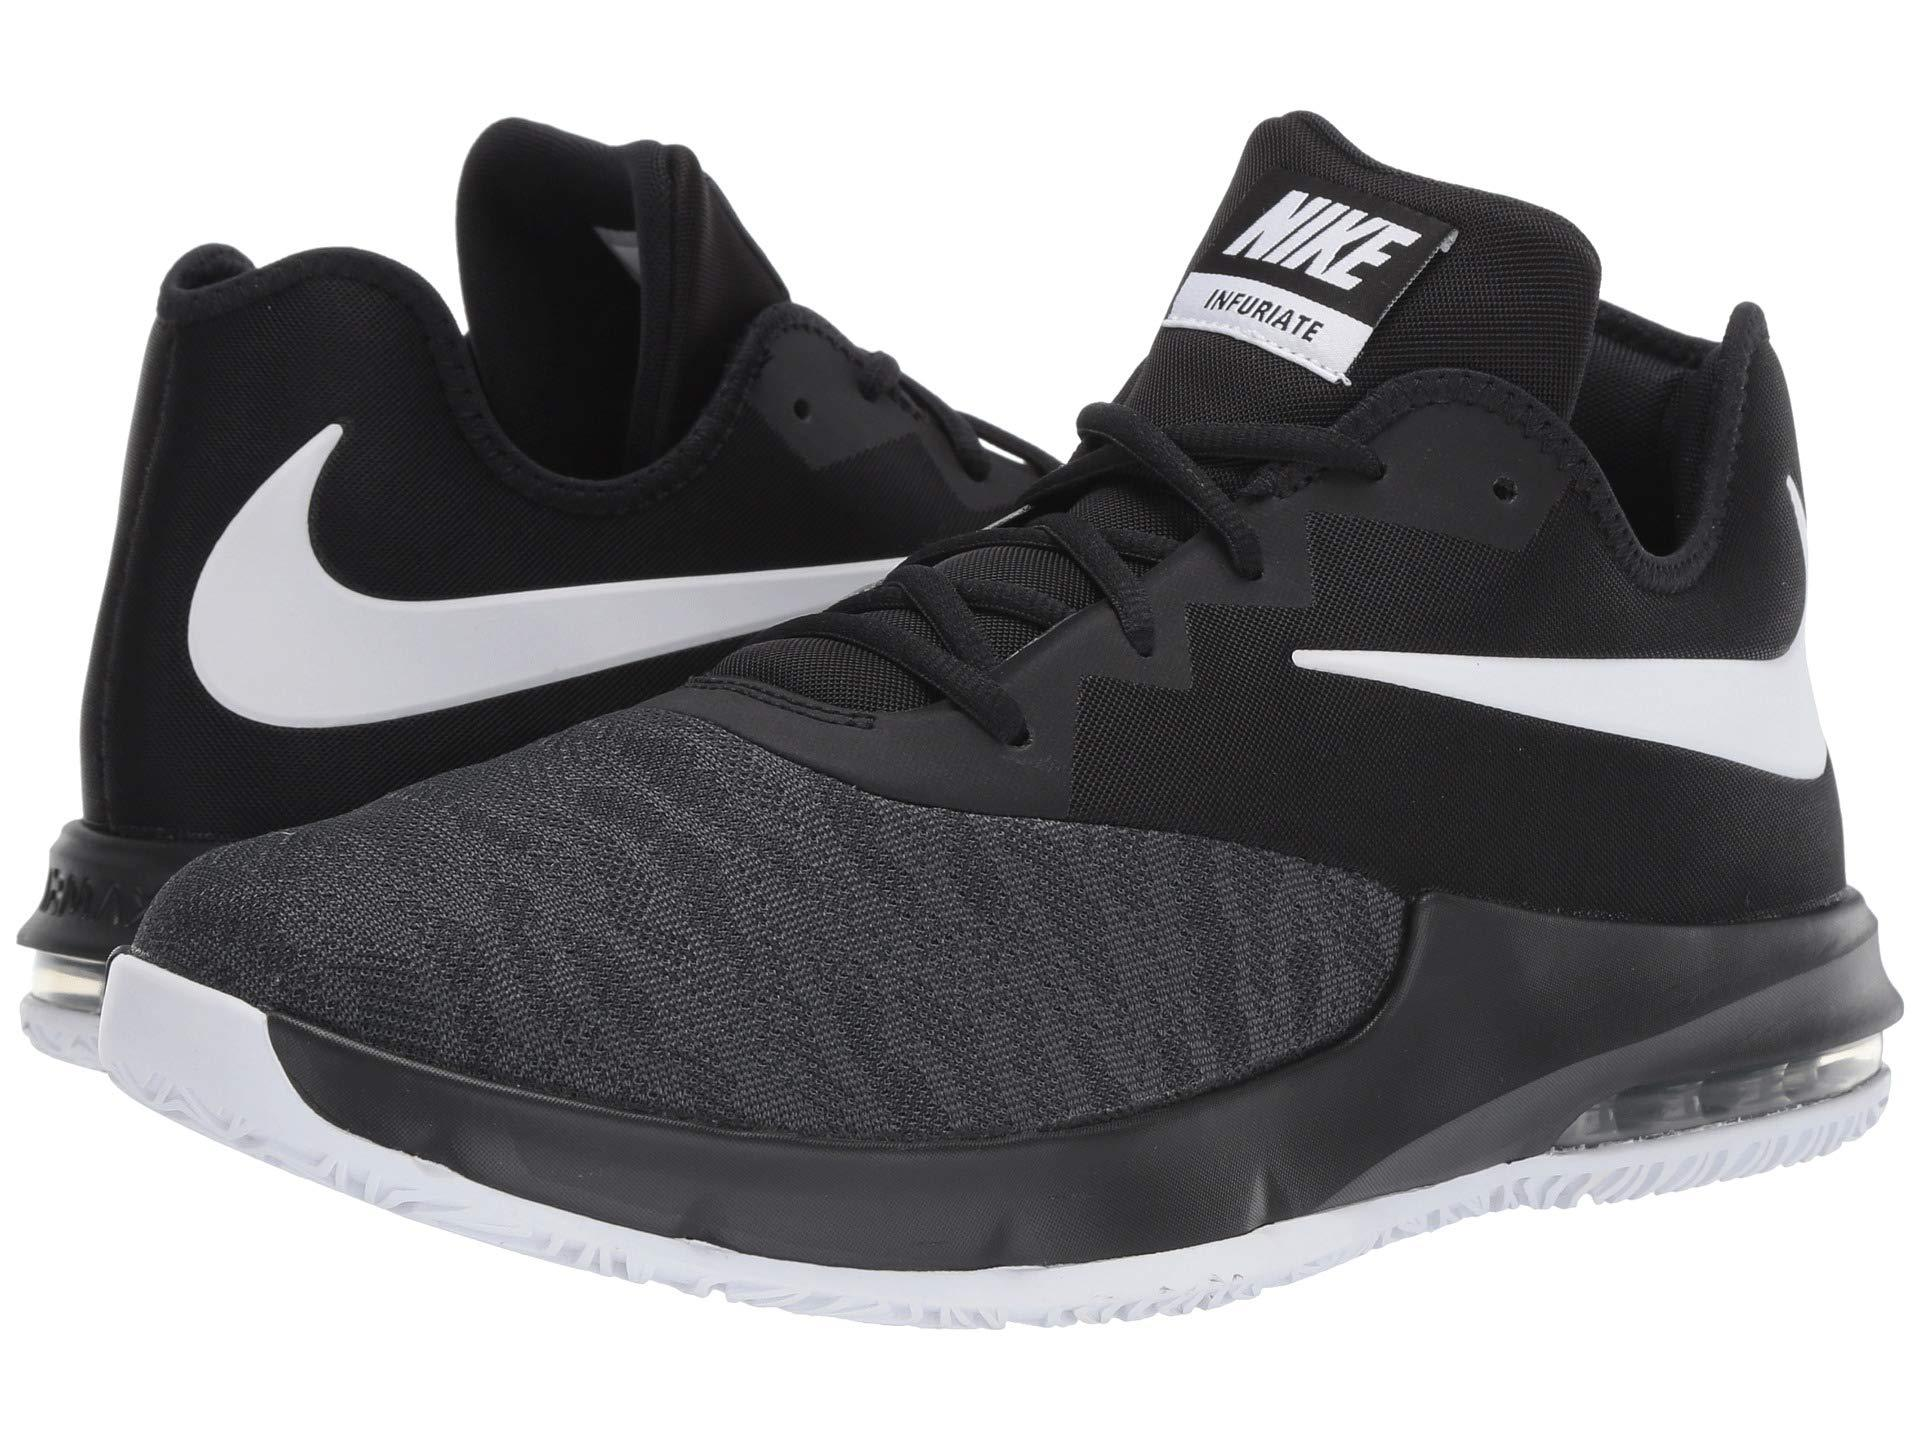 hot sale online 307d0 be13b Nike. Air Max Infuriate Iii Low (white black wolf Grey) Men s Basketball  Shoes